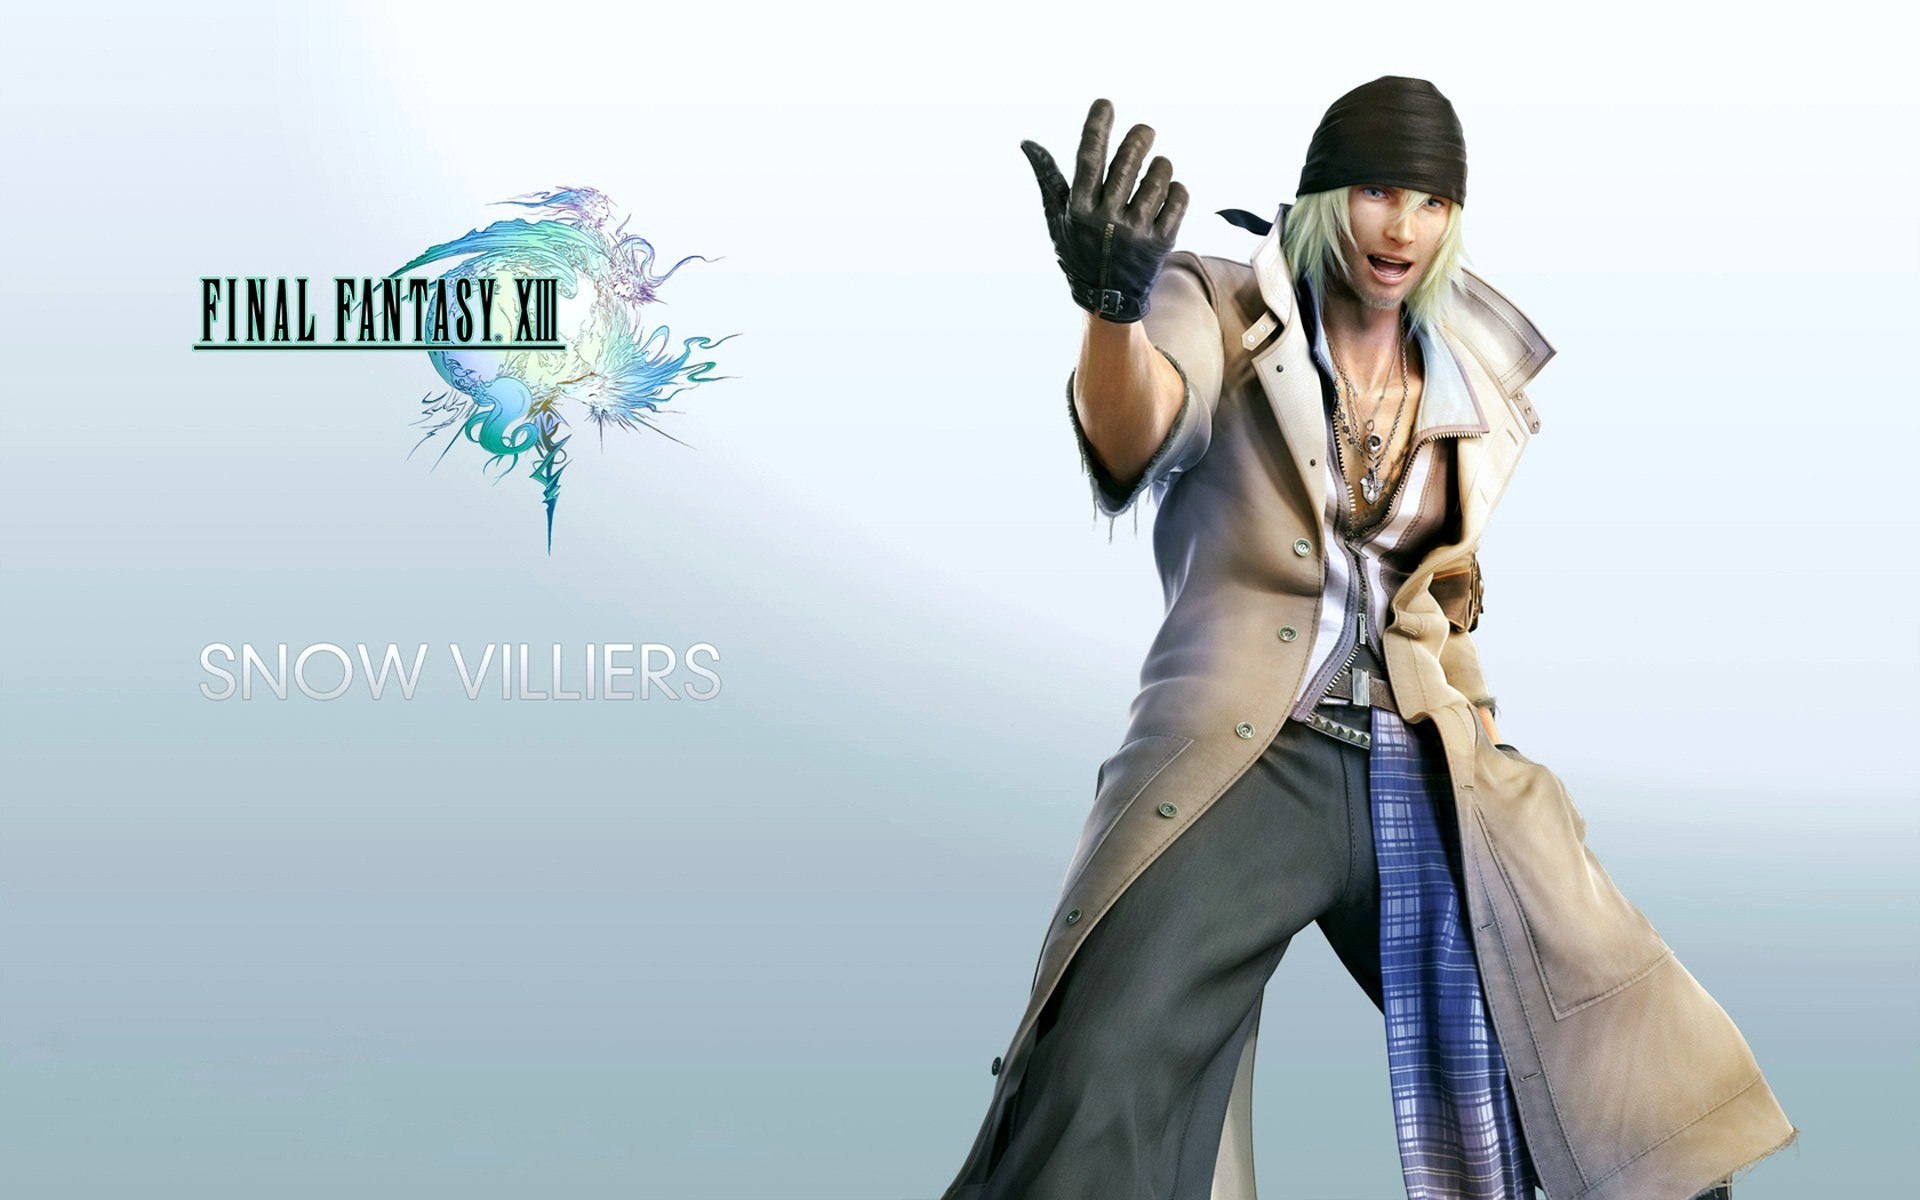 Final Fantasy Xiii Snow Villiers Android Wallpapers